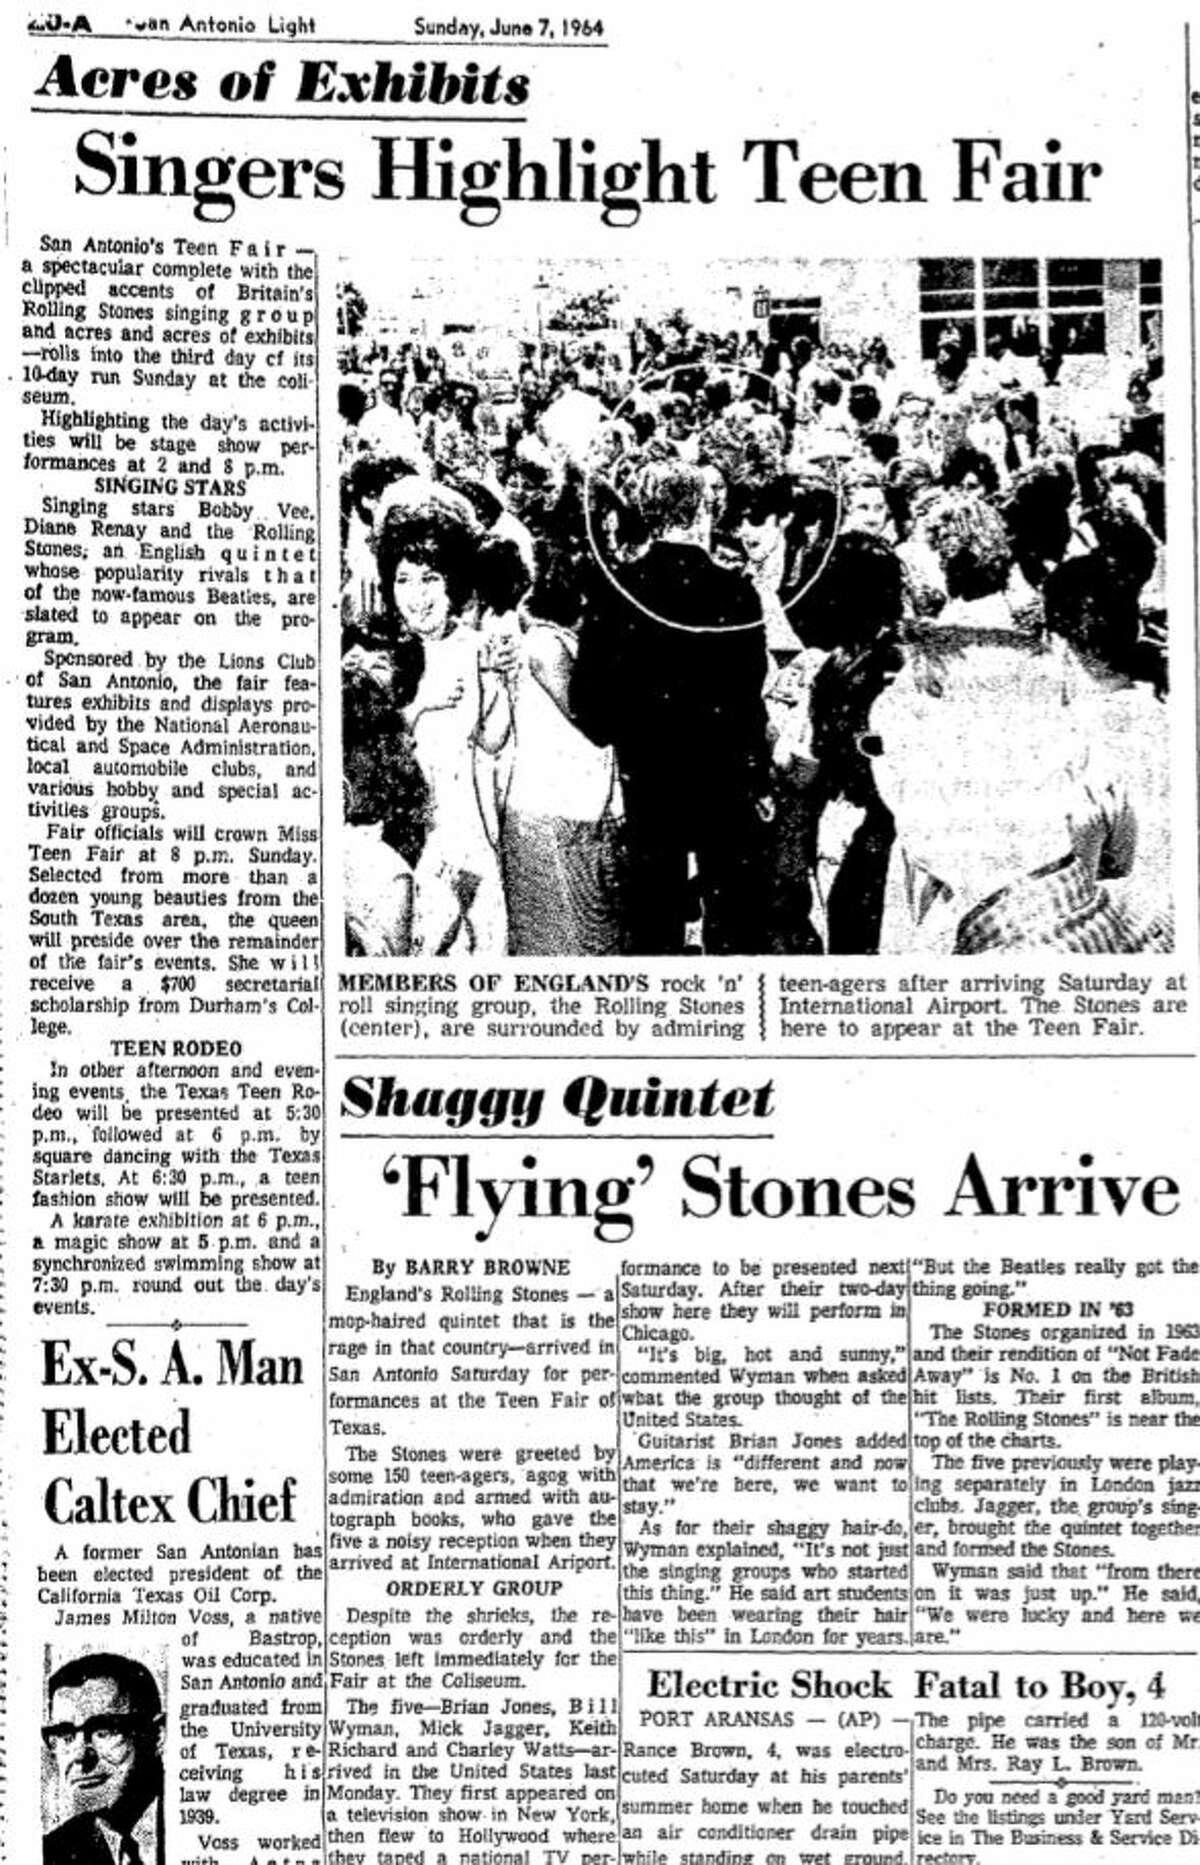 A San Antonio Light writer wrote about the Rolling Stones arriving at the San Antonio airport.